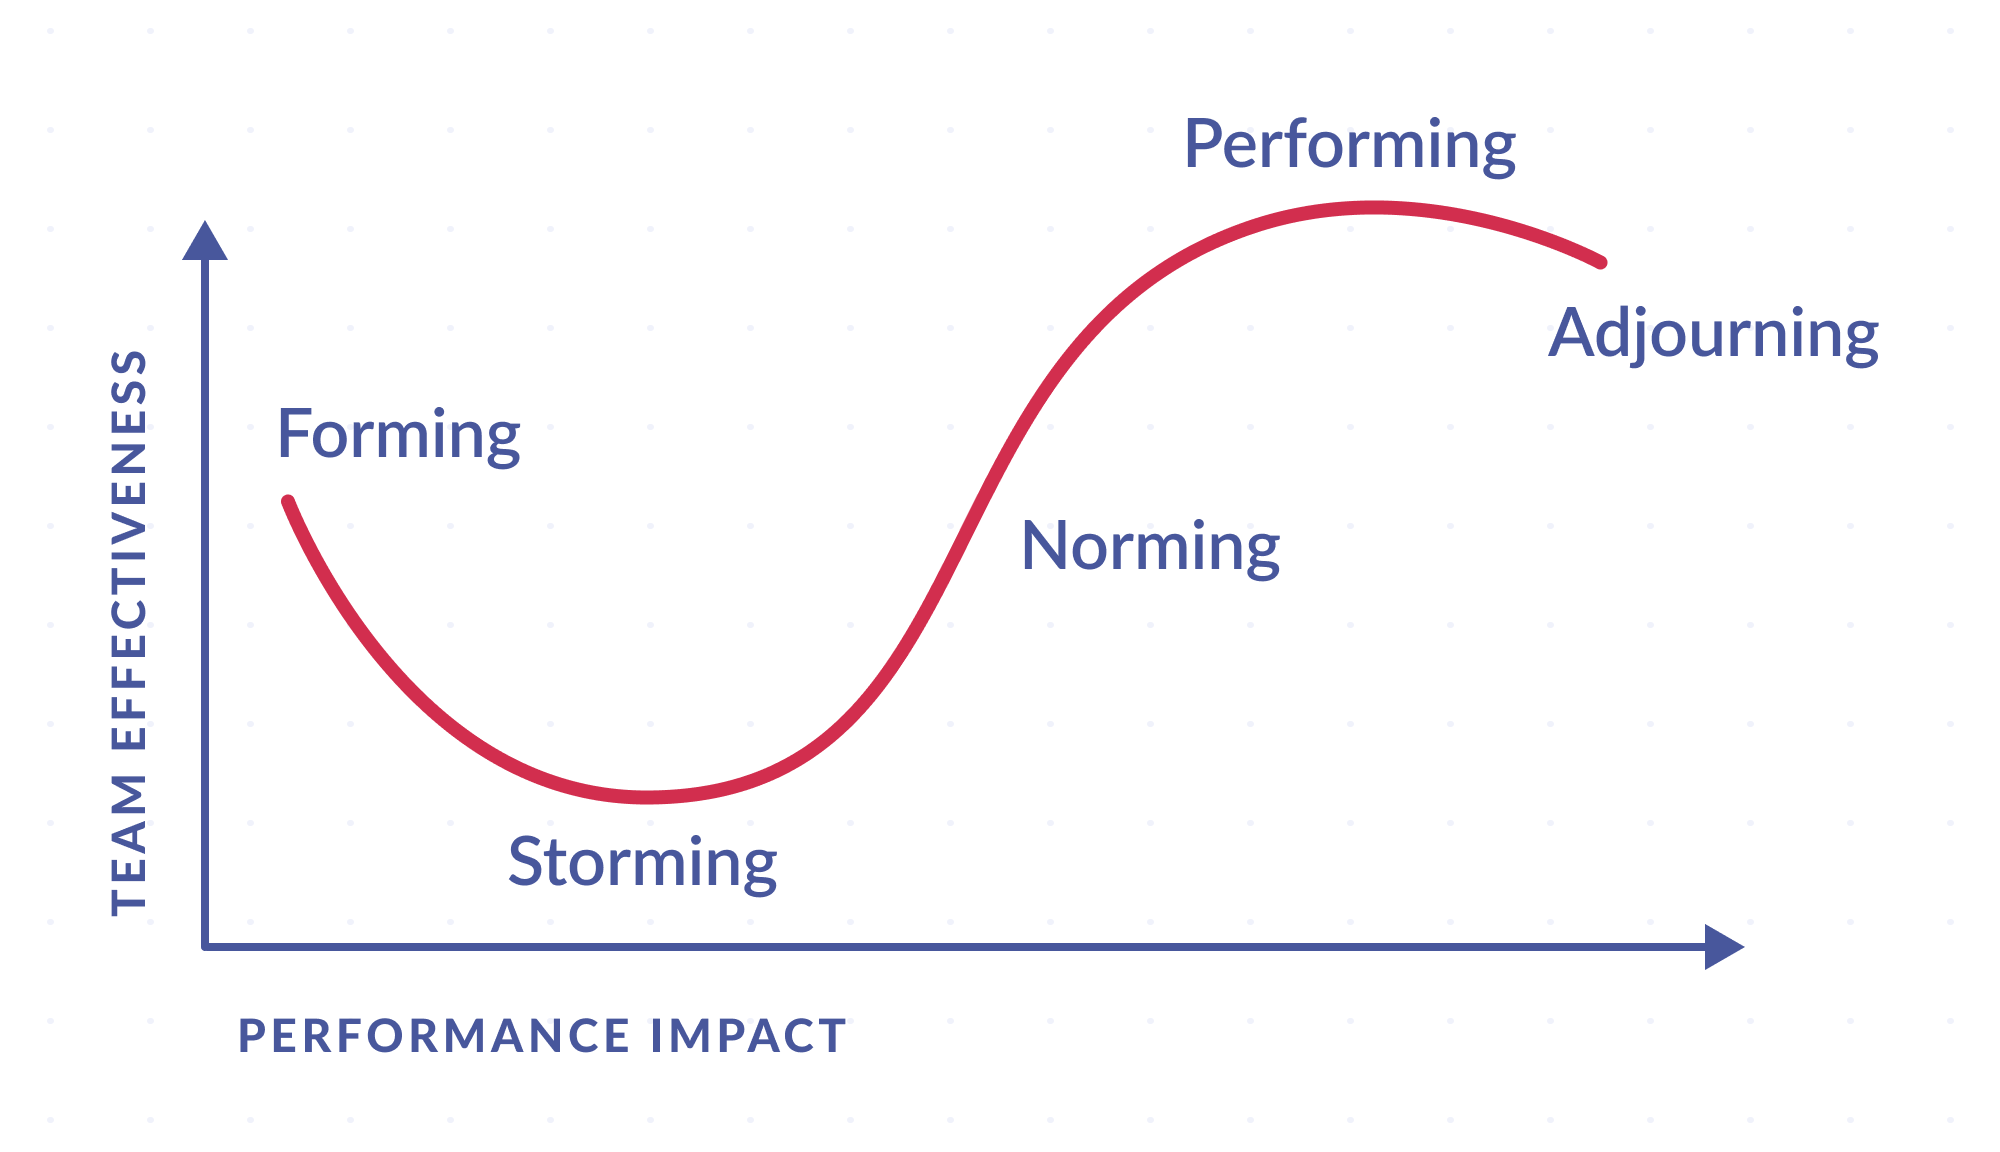 The chart featuring five stages of team development